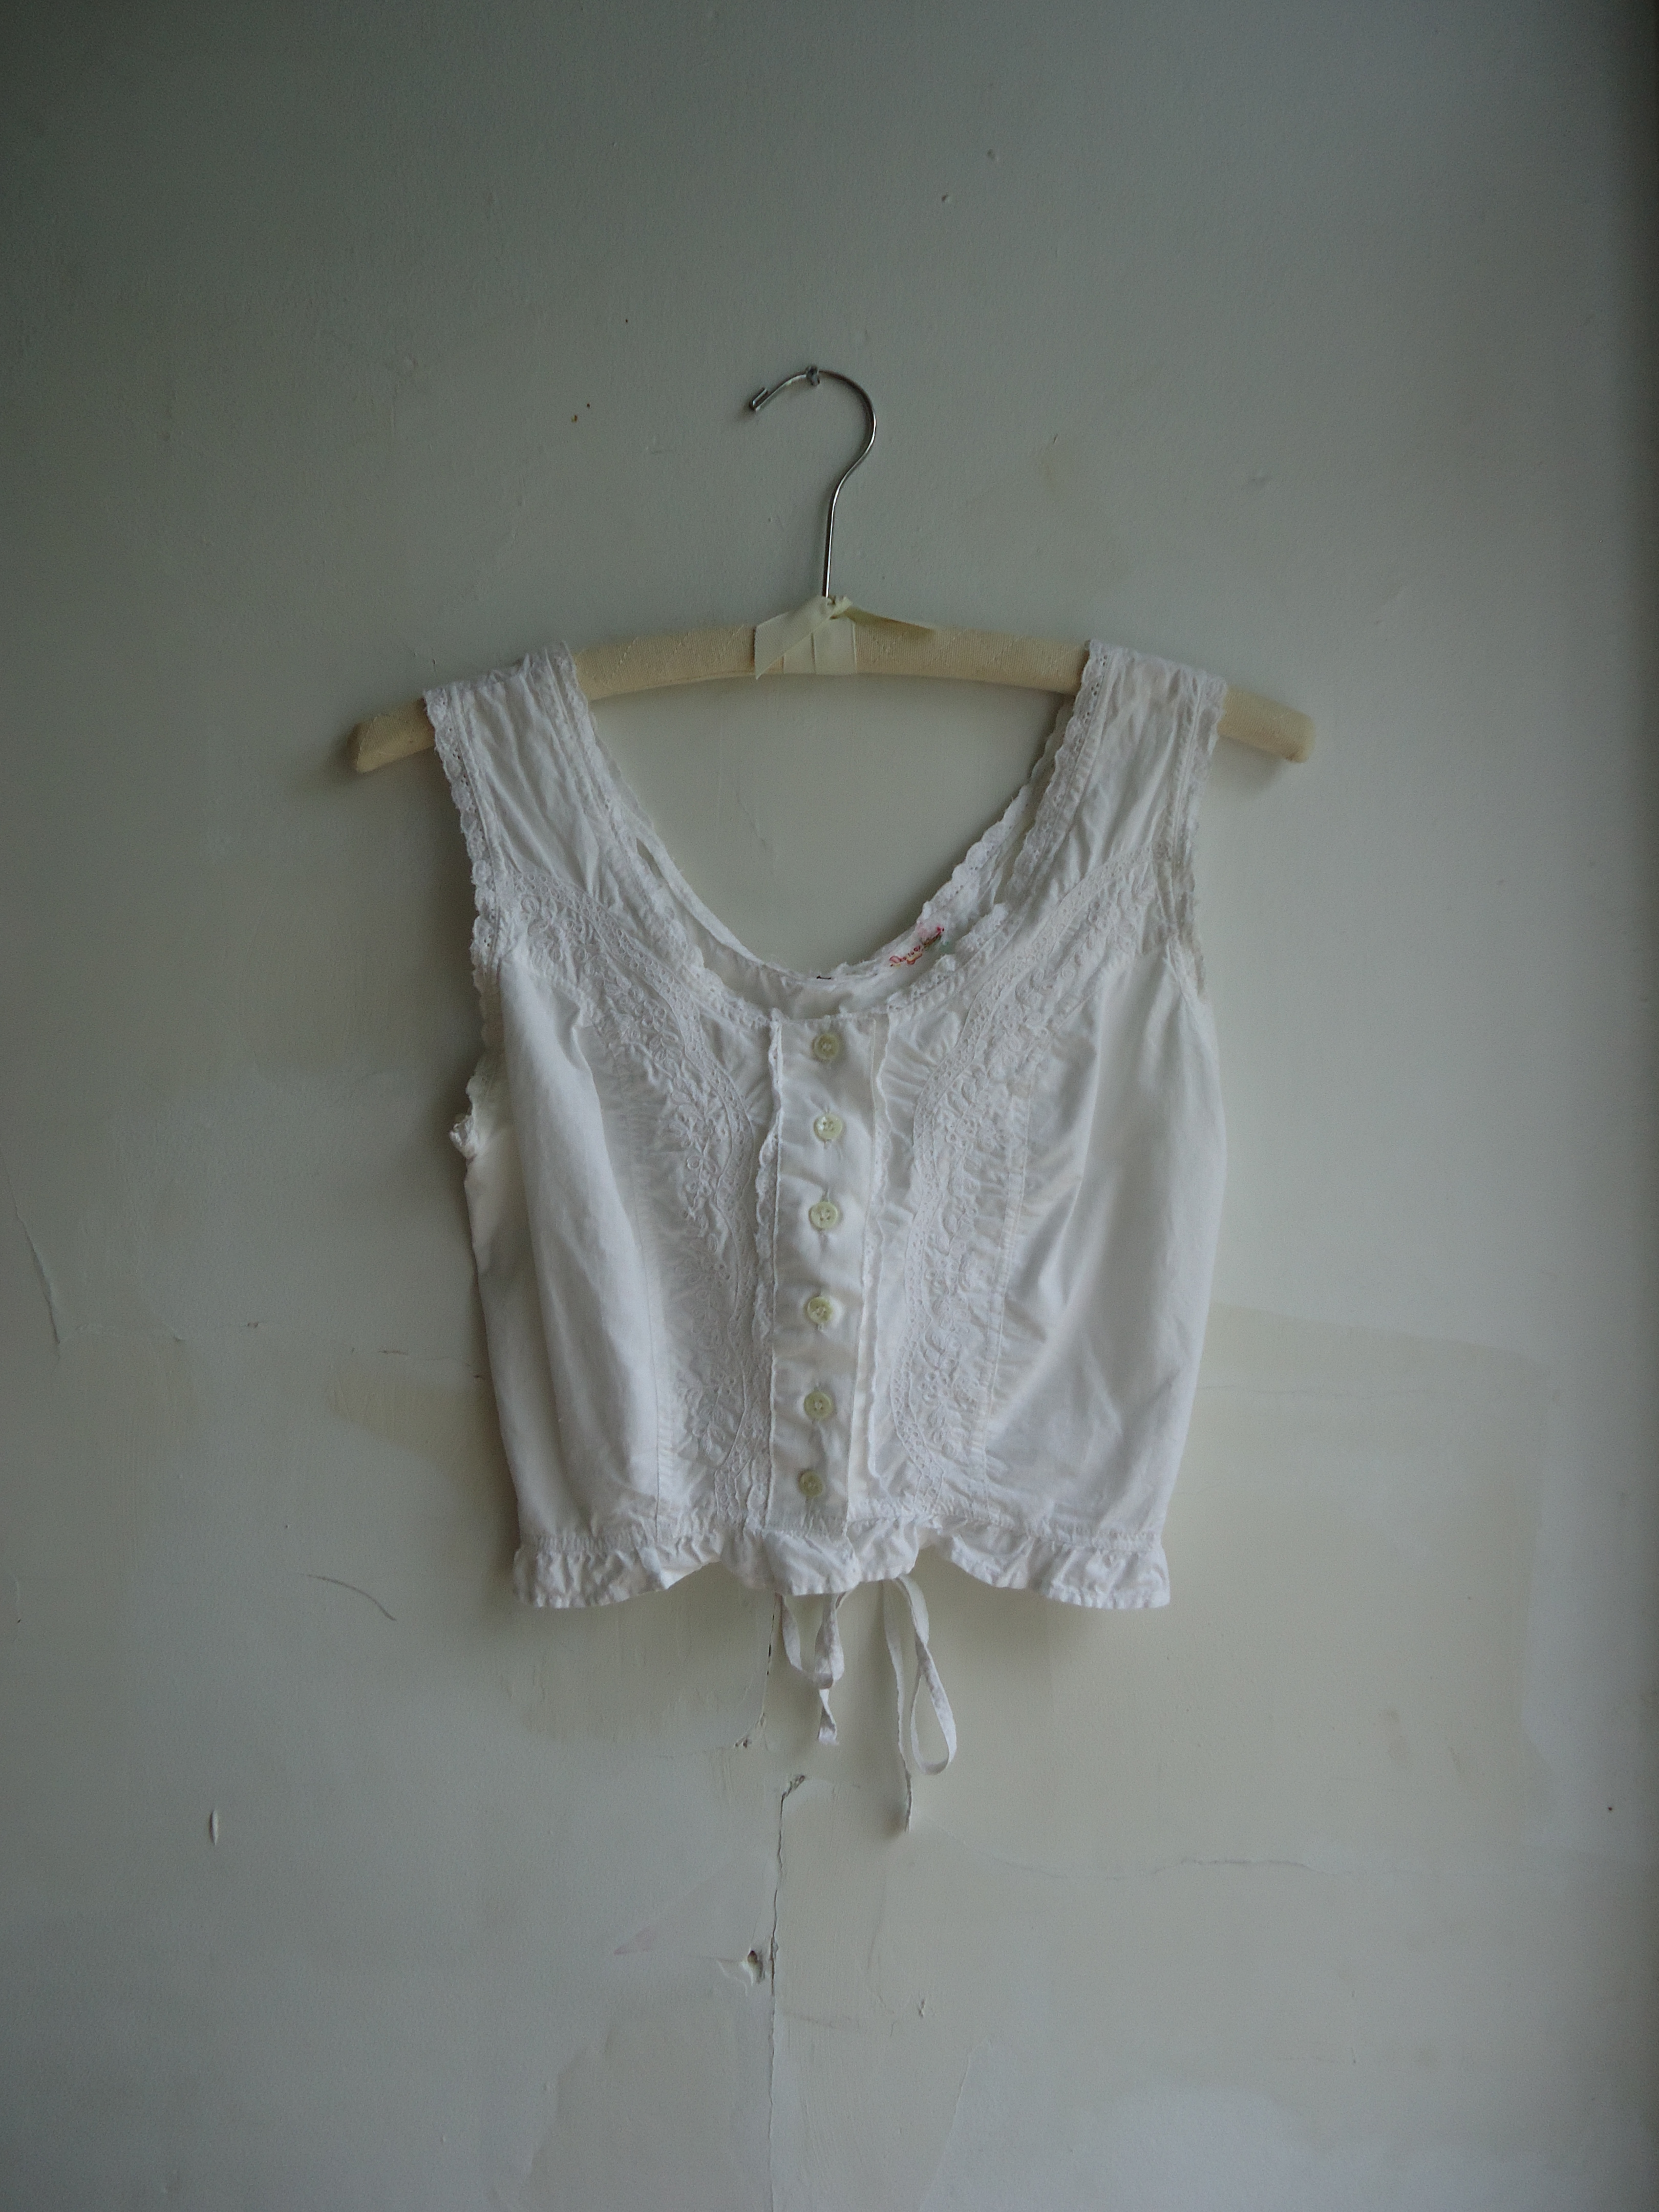 Irene & Irene Vintage Edwardian Lace Crop Top